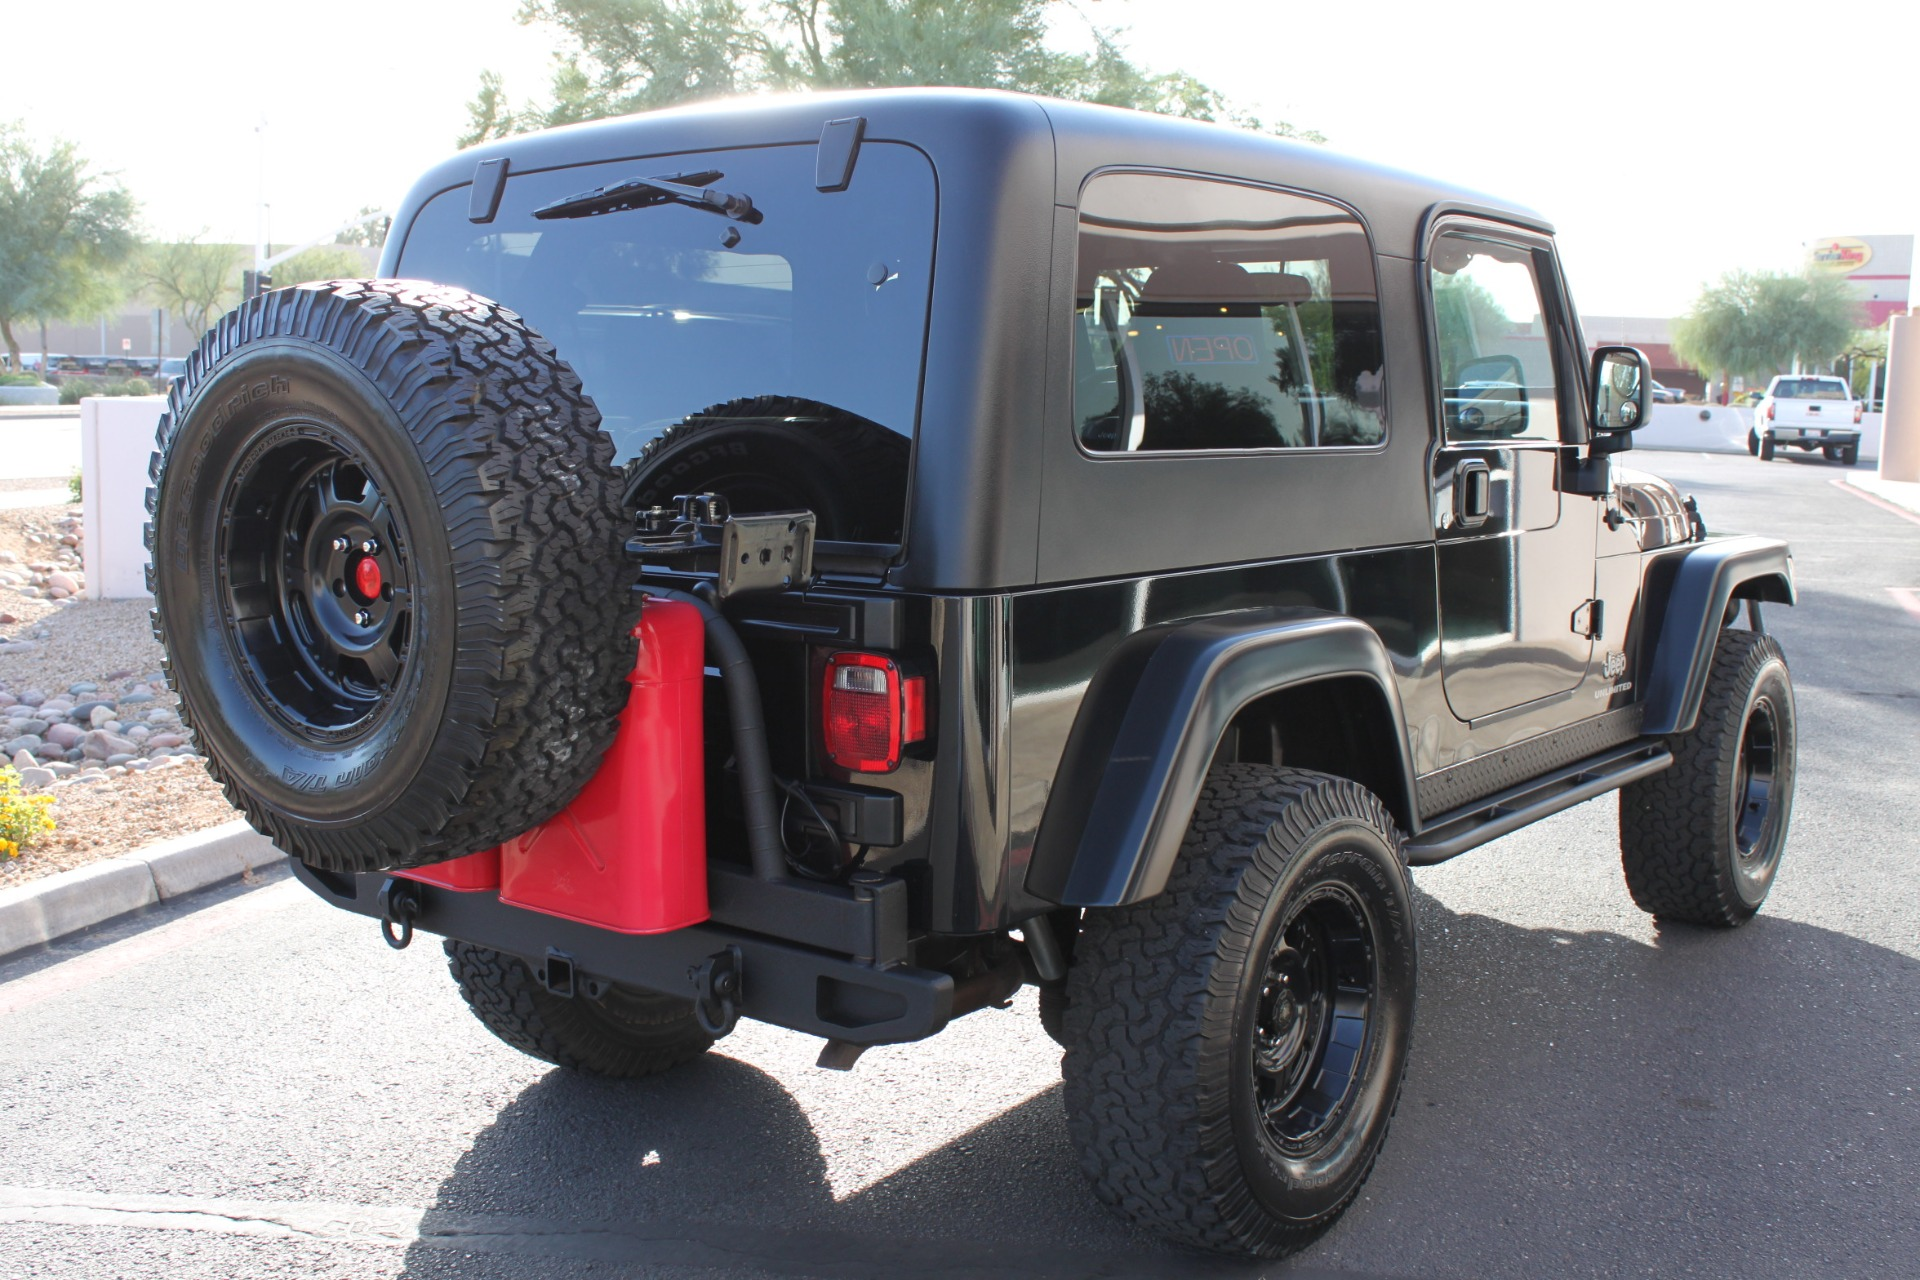 Used-2006-Jeep-Wrangler-Unlimited-Rubicon-LWB-Classic